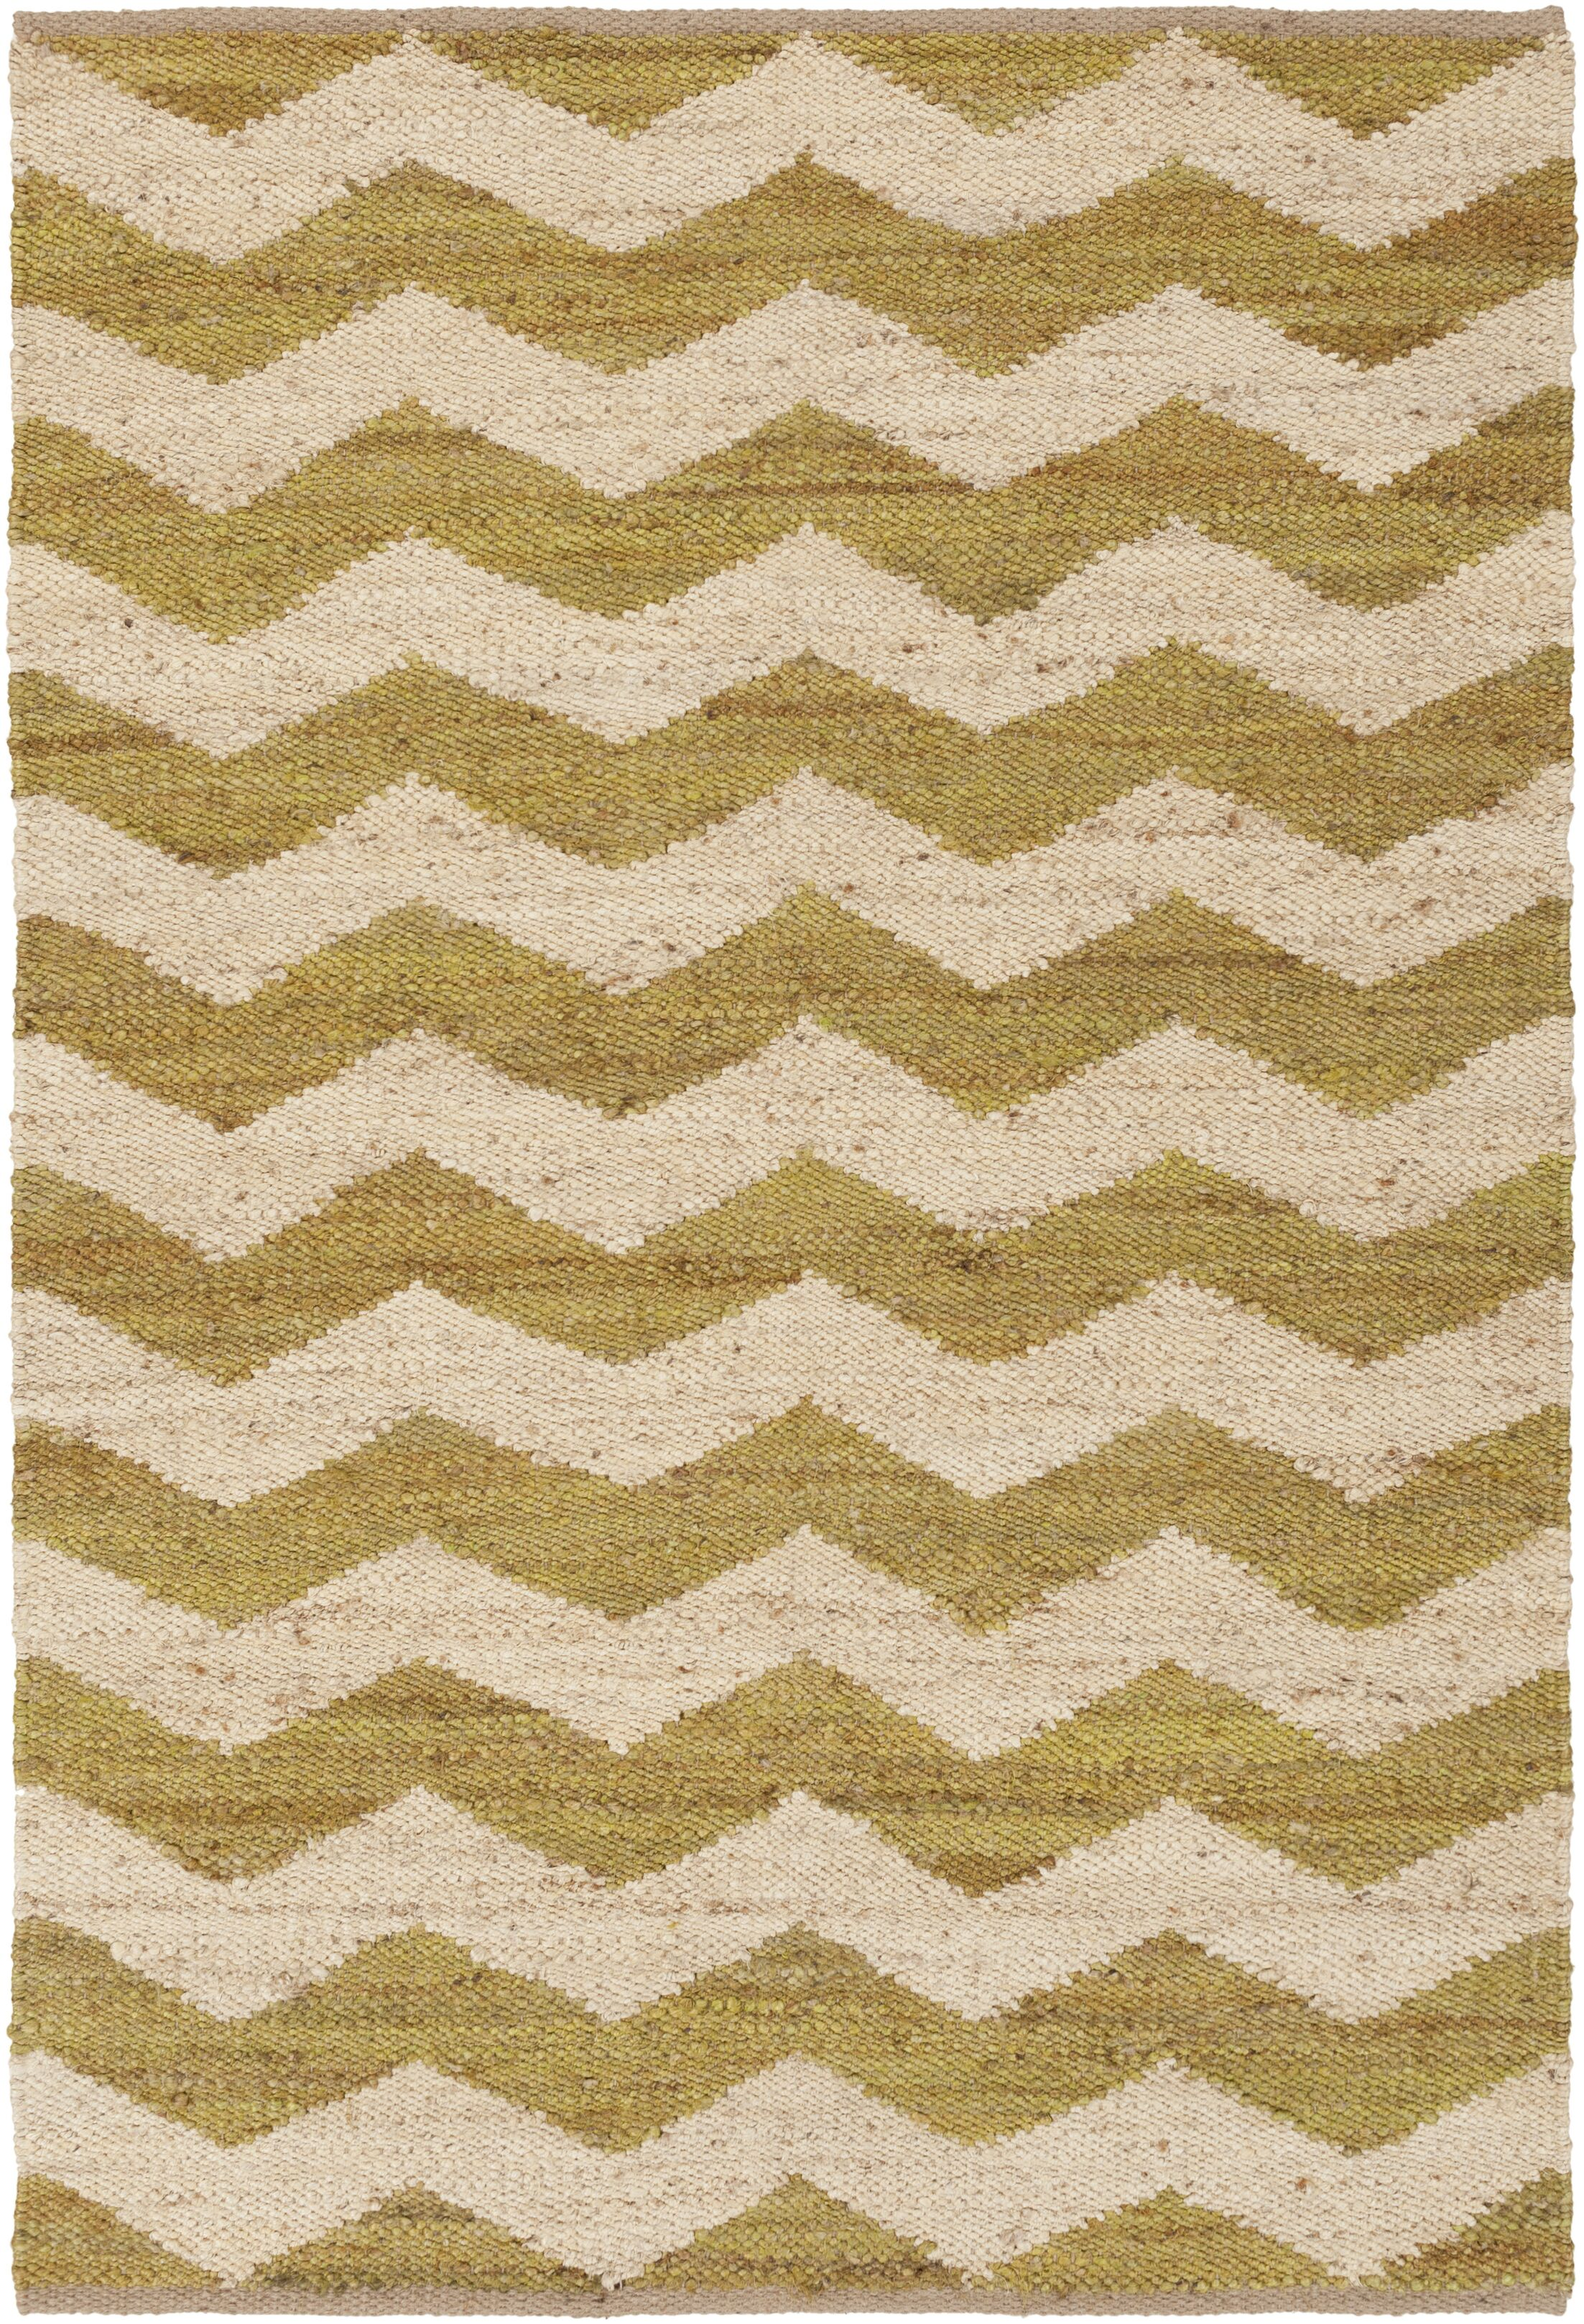 Ayers Hand Woven Green/Ivory Area Rug Rug Size: Rectangle 4' x 6'